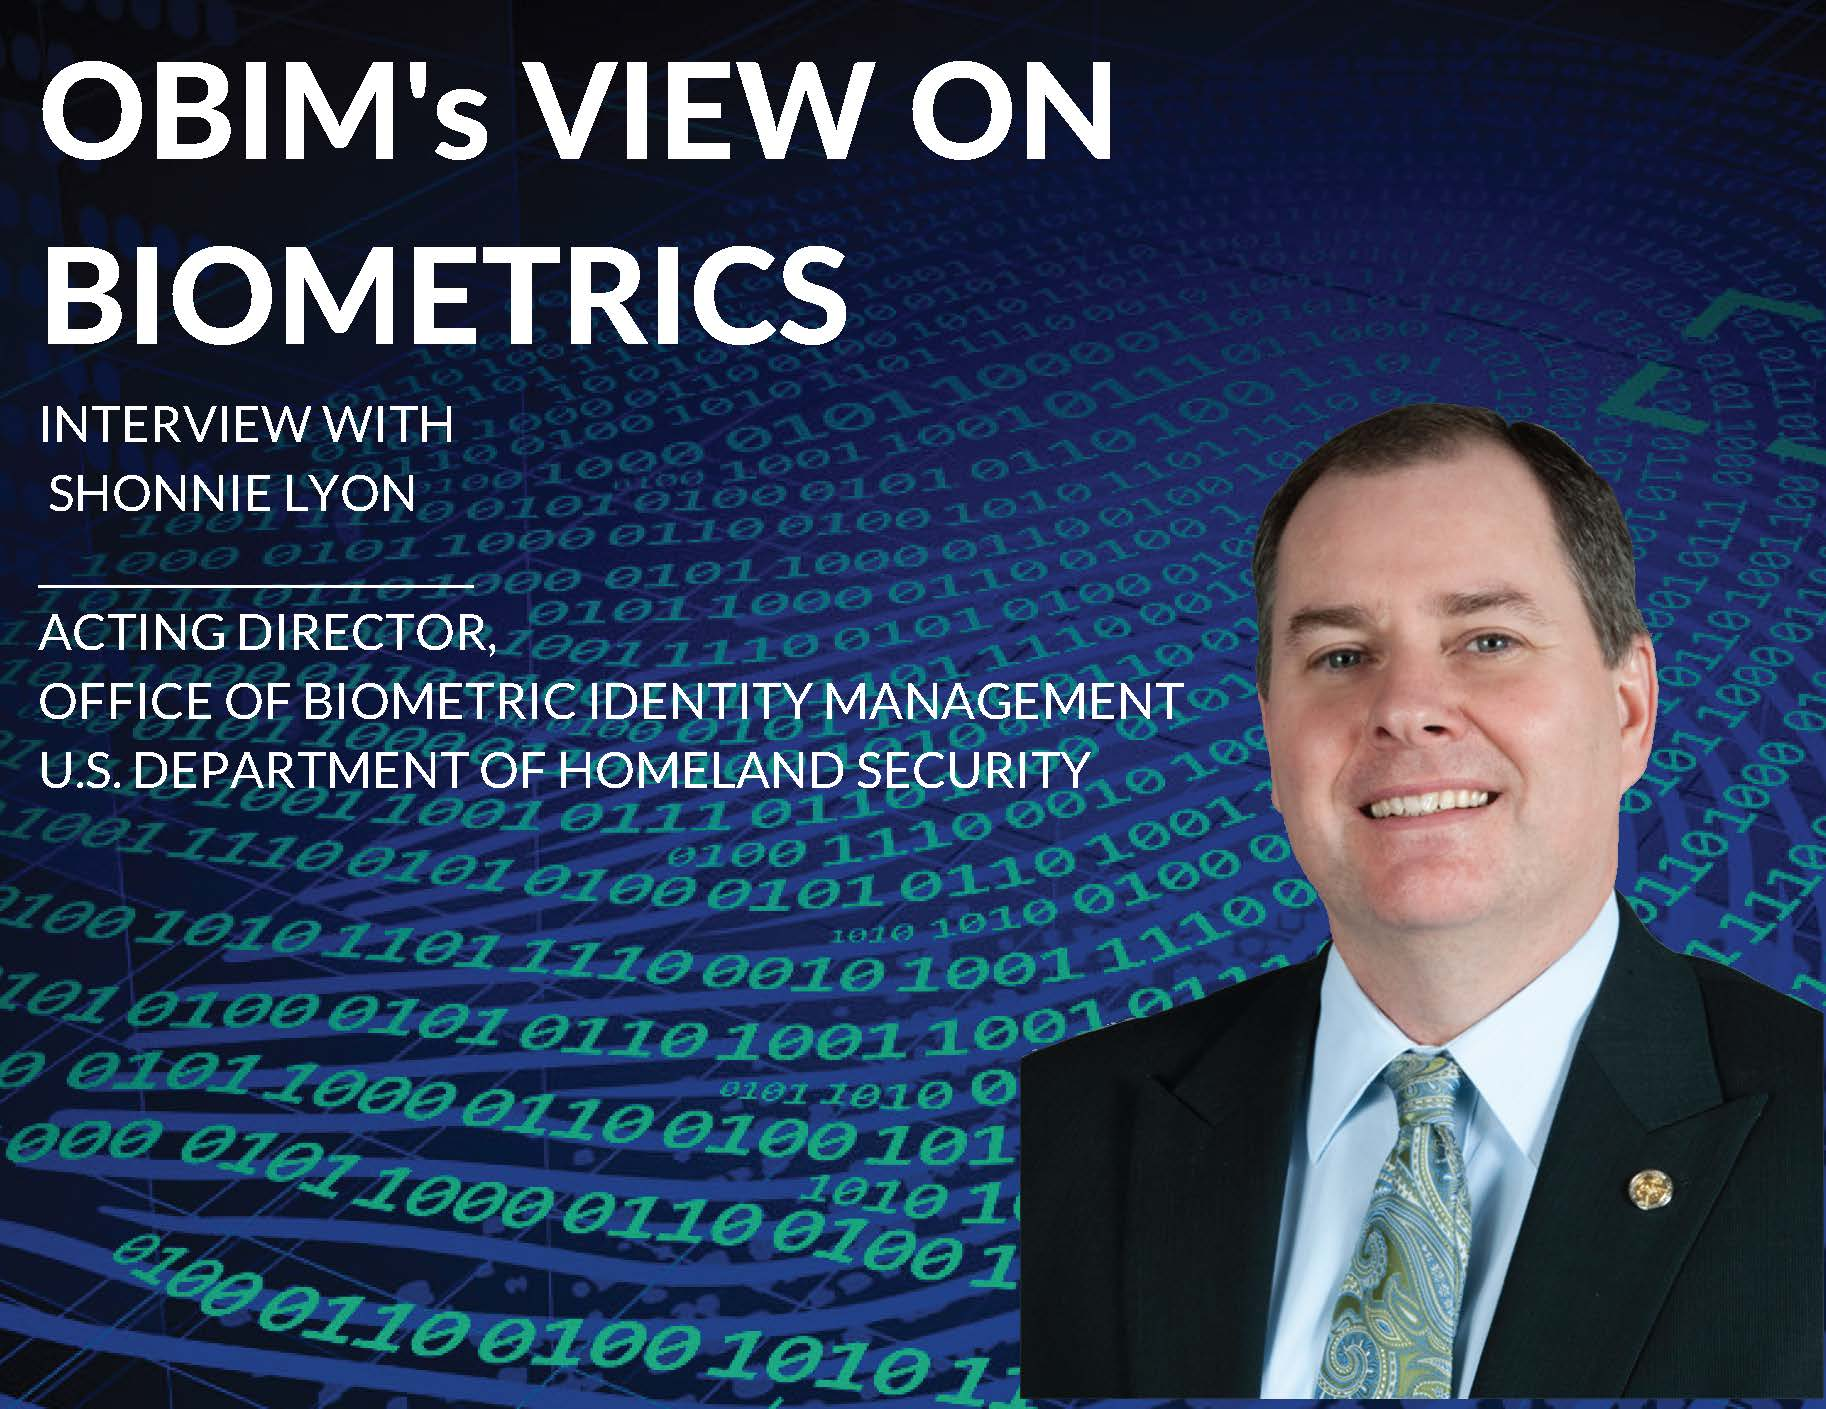 OBIM's View On Biometrics